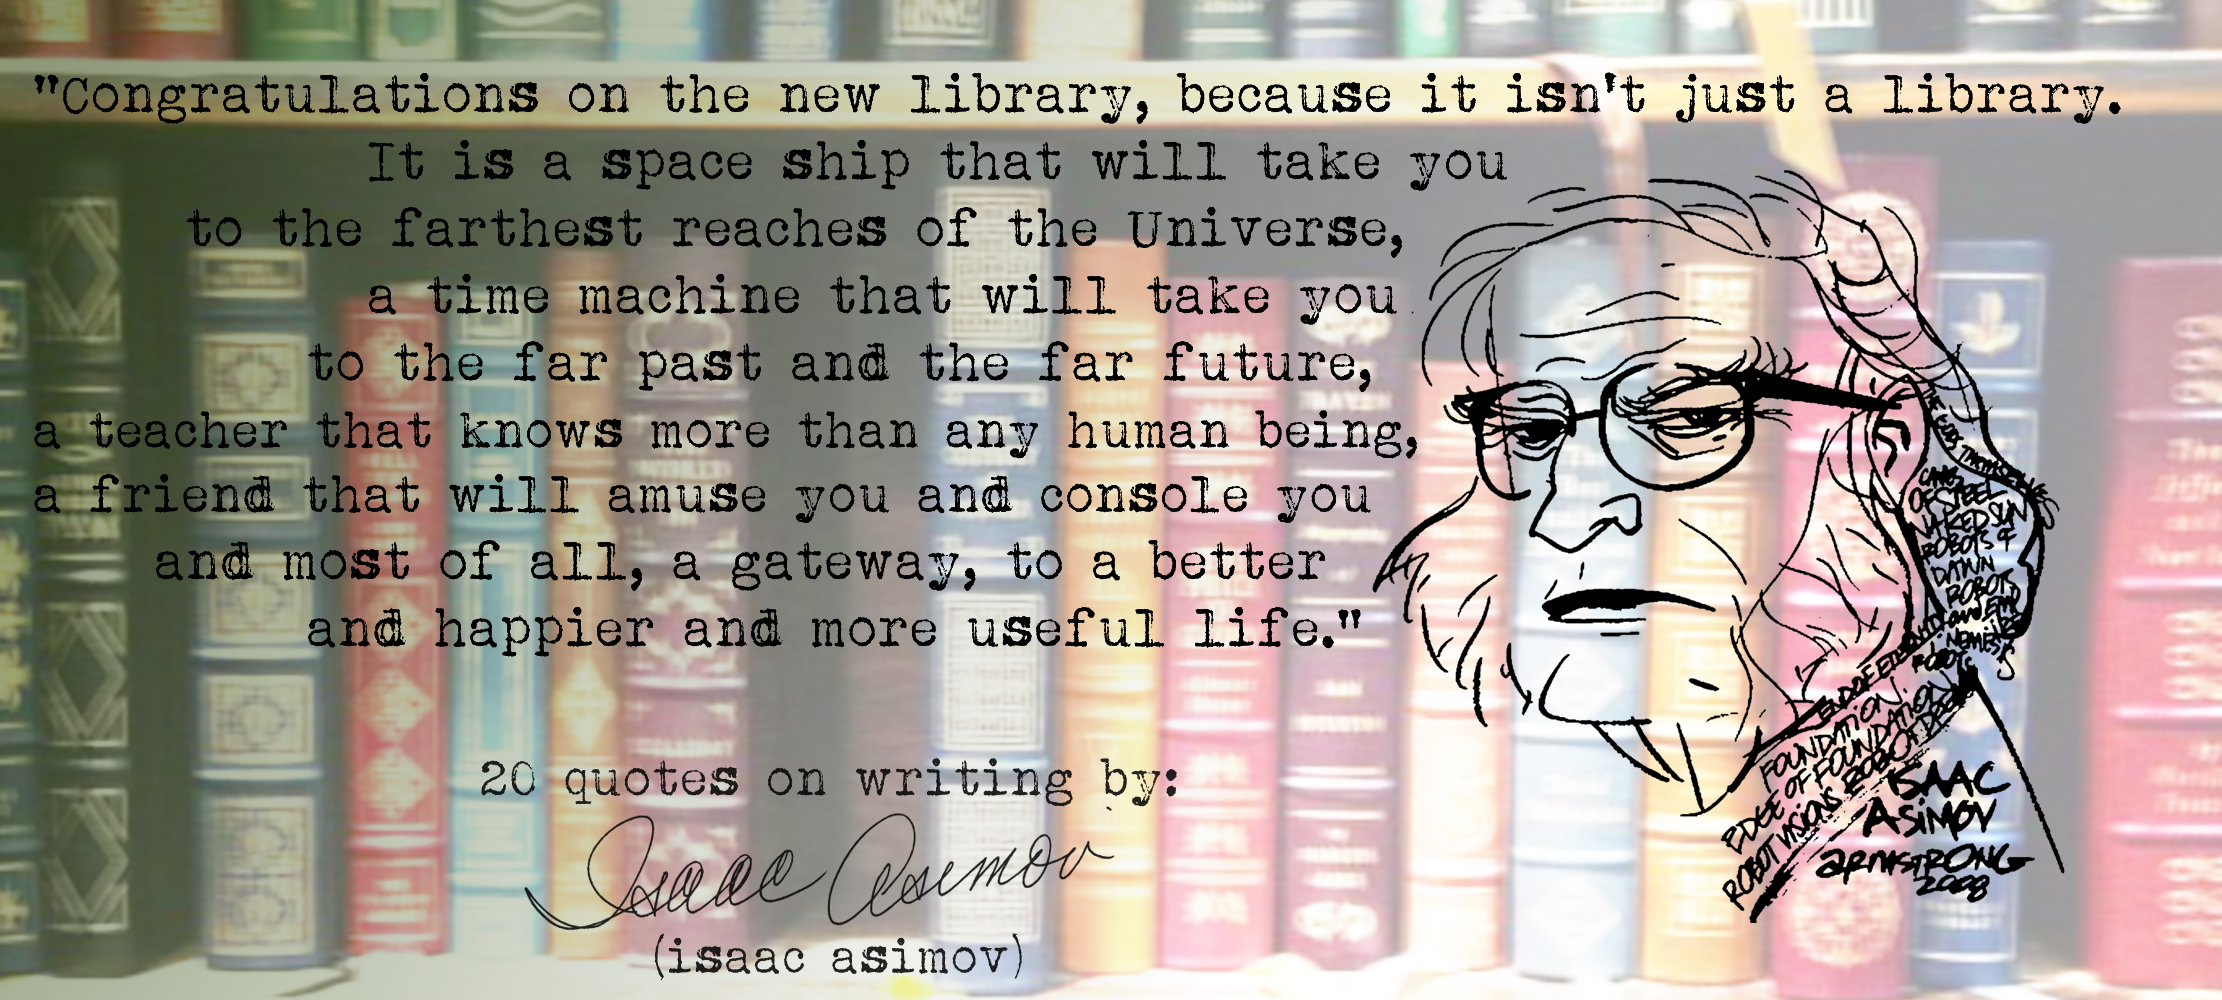 the life of isaac asimov before becoming a writer Isaac asimov biography, life, interesting facts childhood & early life isaak yudovick ozimov was born in petrovichi, russia on 2nd january 1920 to parents anna rachel berman and judah ozimov when the family moved to brooklyn in 1924, it was then that ozimov surname was changed to asimov he was named isaac after his maternal.